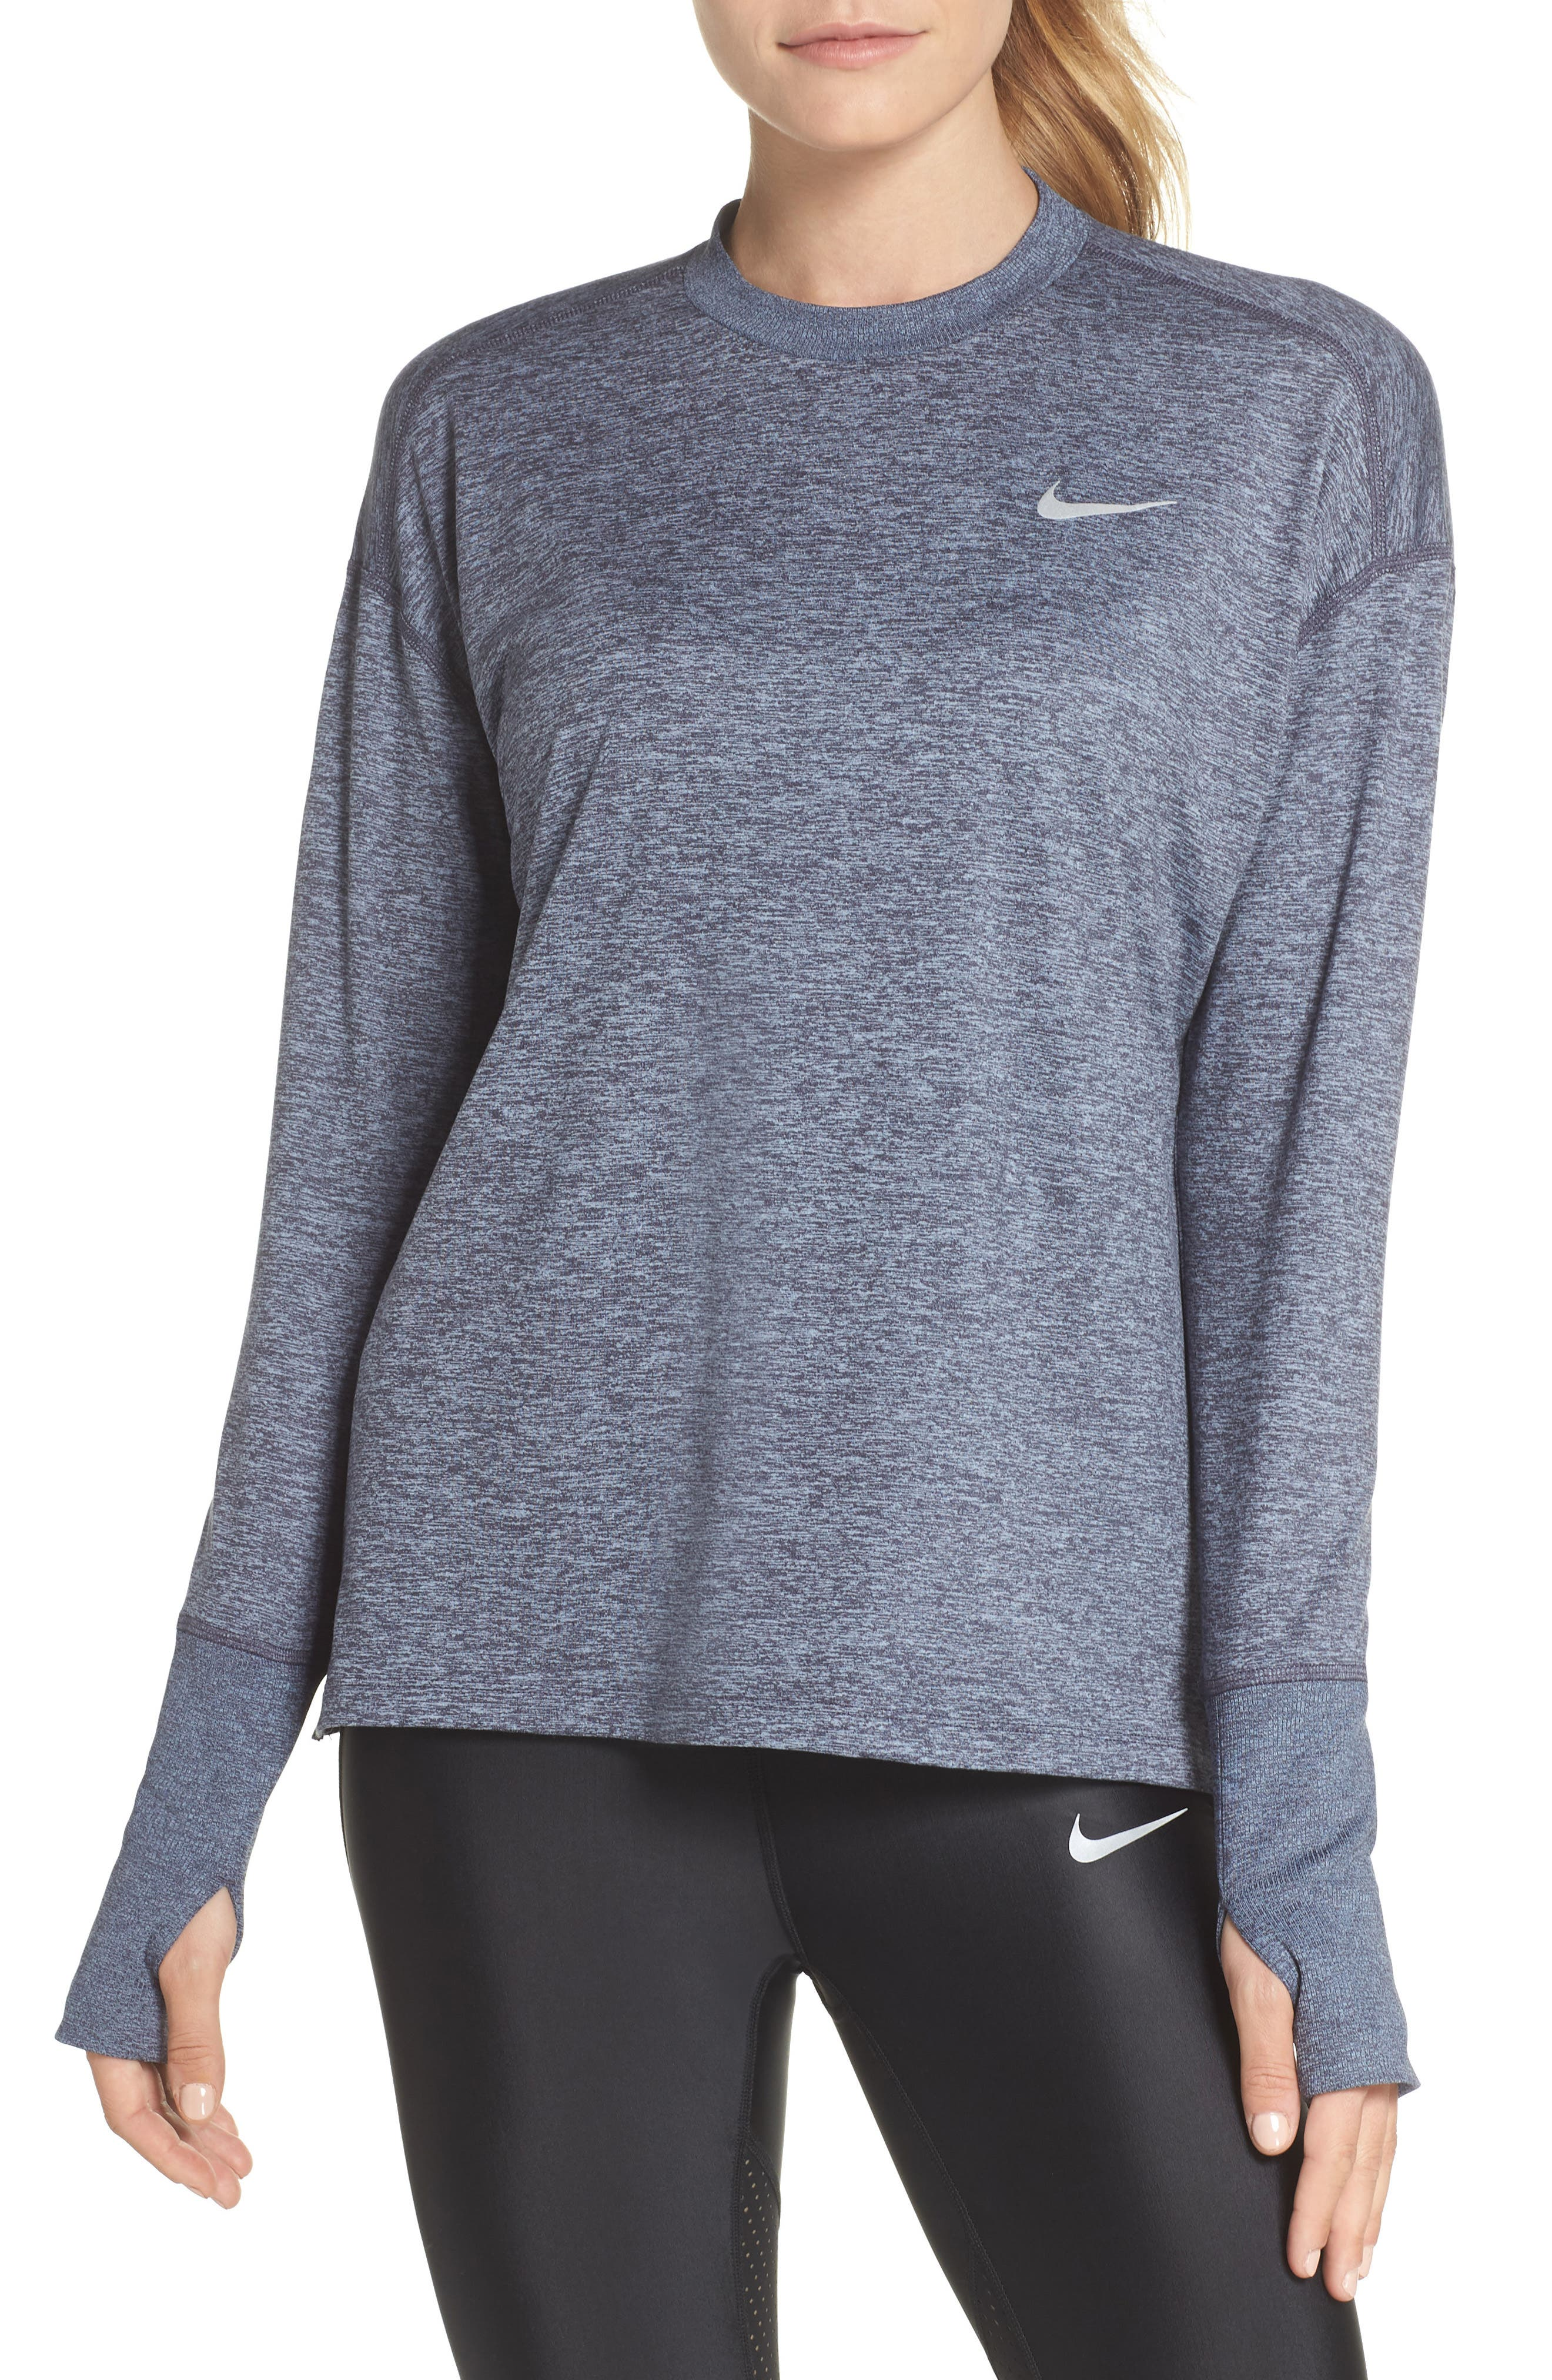 Dry Element Crewneck Top,                         Main,                         color, 081